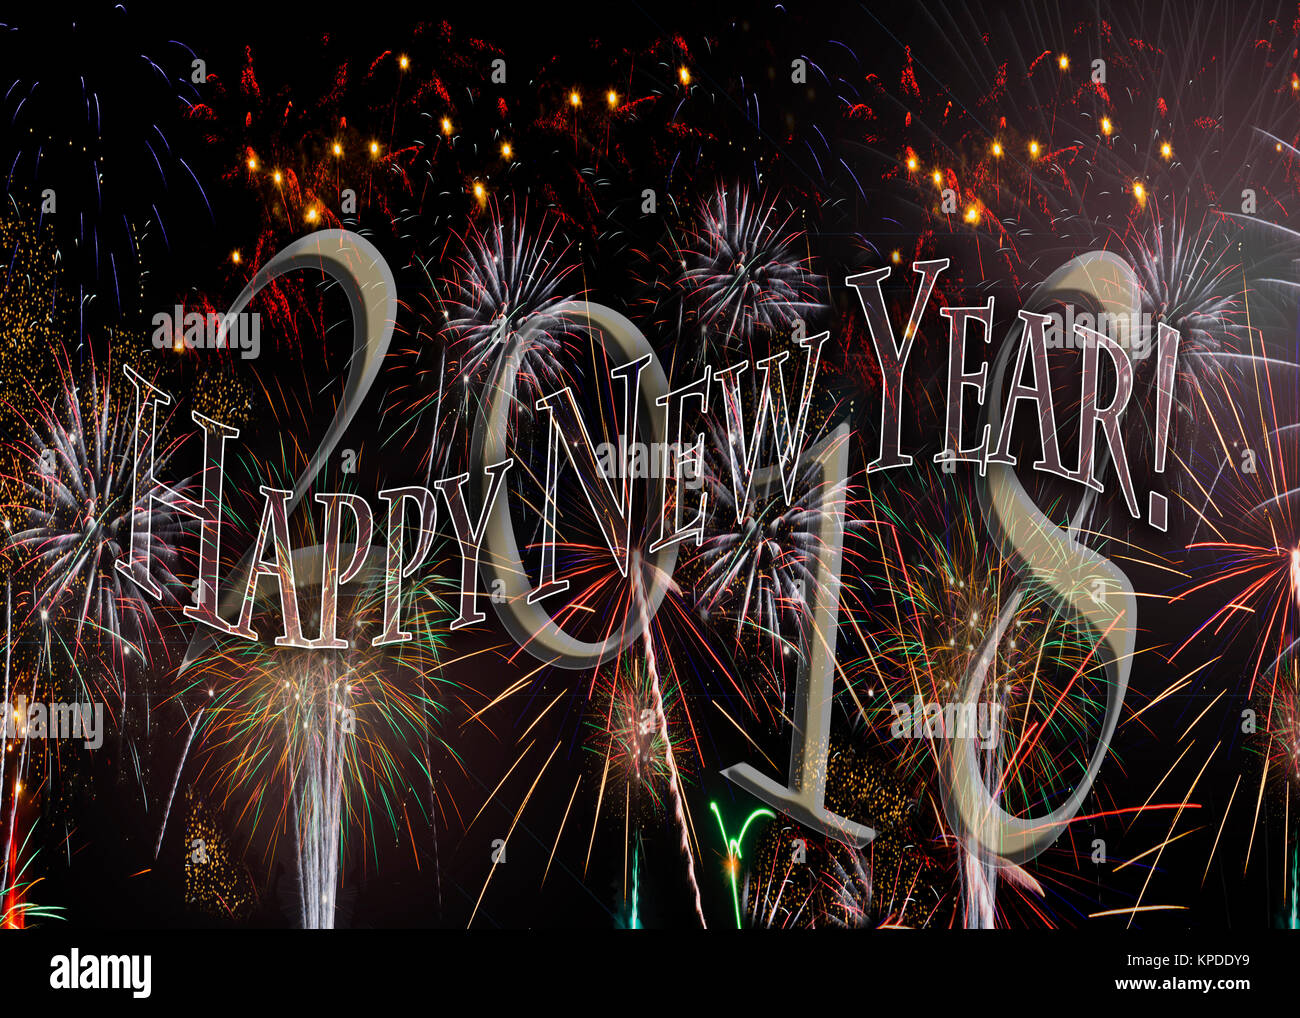 Fireworks 2018 New Years Eve concept transparent numbers with 2018 behind. Also available without the year see KPDDYA - Stock Image